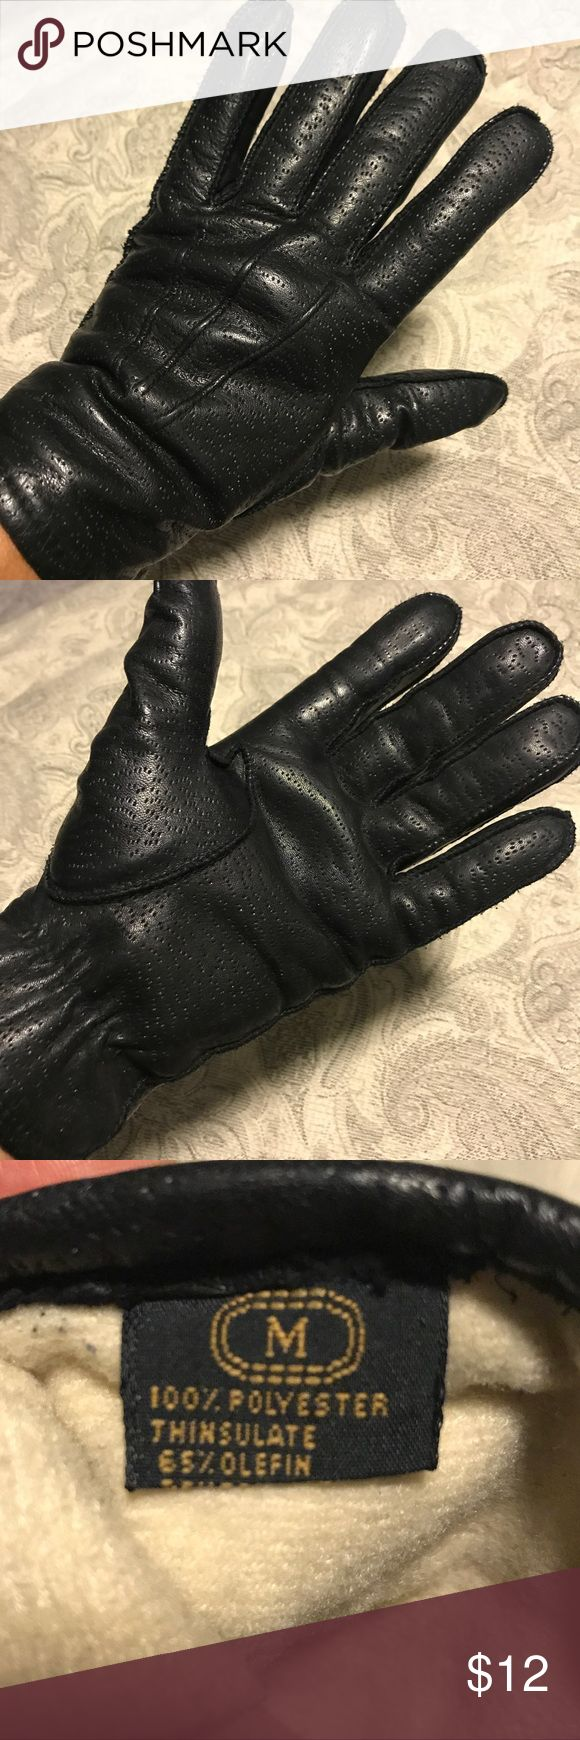 Black Leather Thinsulate Gloves, size Medium In excellent pre-owned condition, no wearing on leather.  Size is Medium Accessories Gloves & Mittens